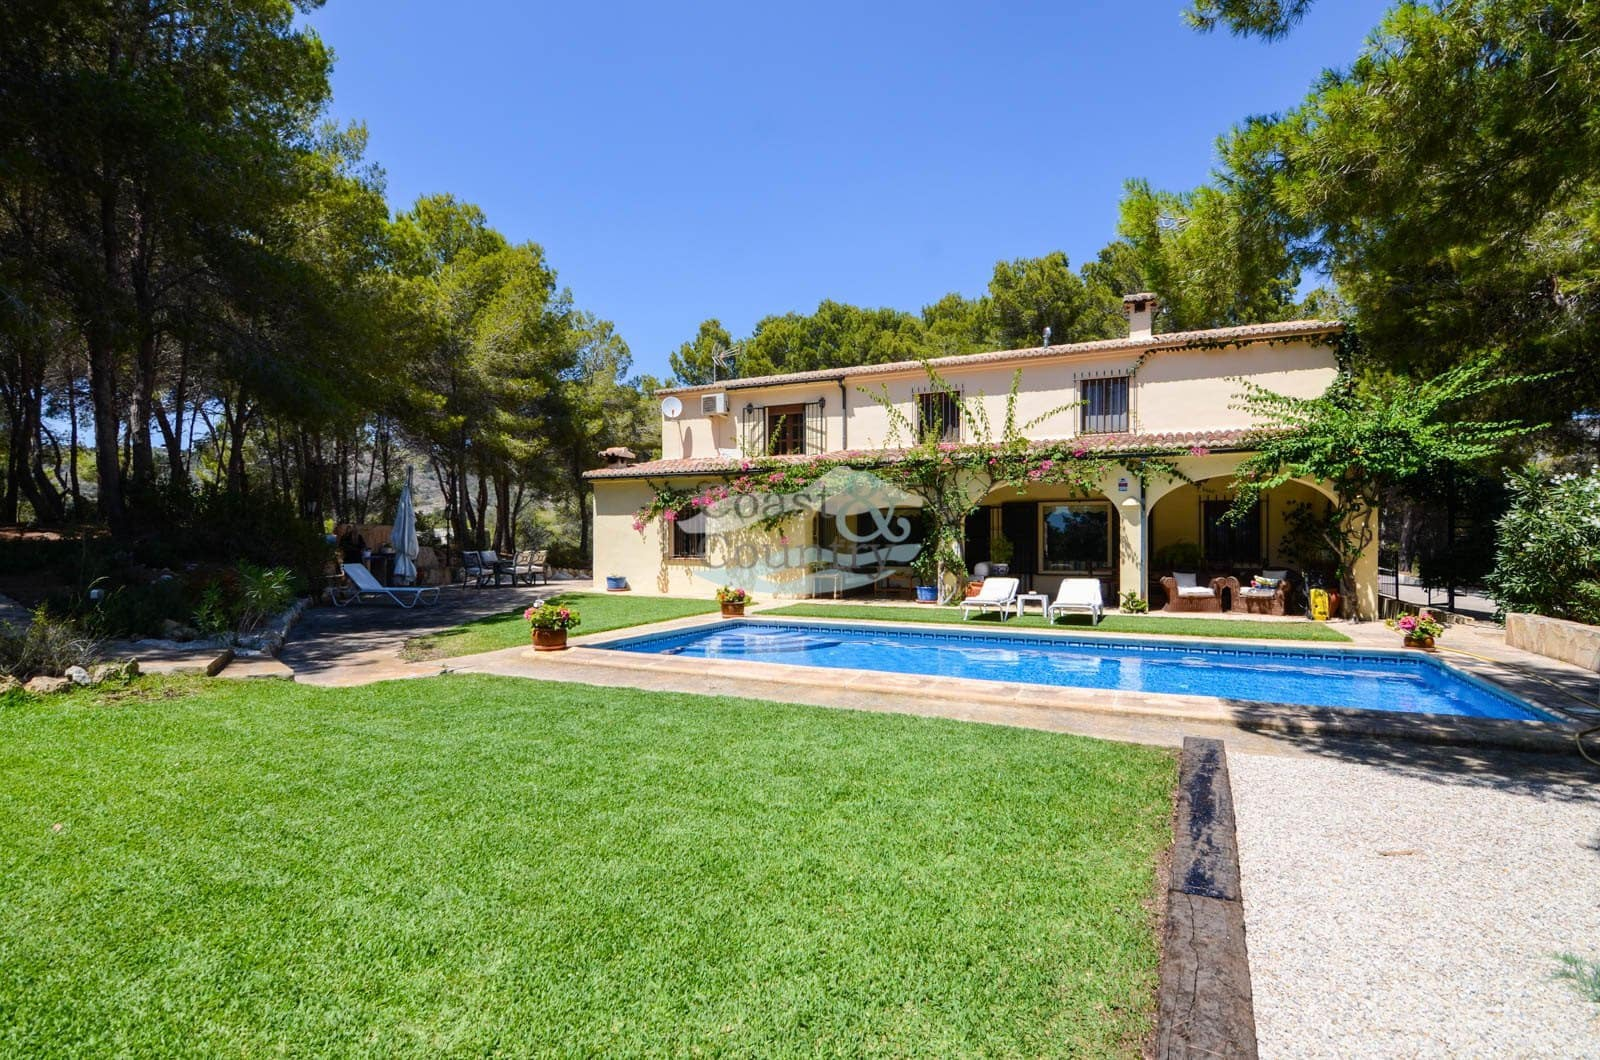 4 bedroom Finca/Country House for sale in Teulada with pool garage - € 799,950 (Ref: 4347831)